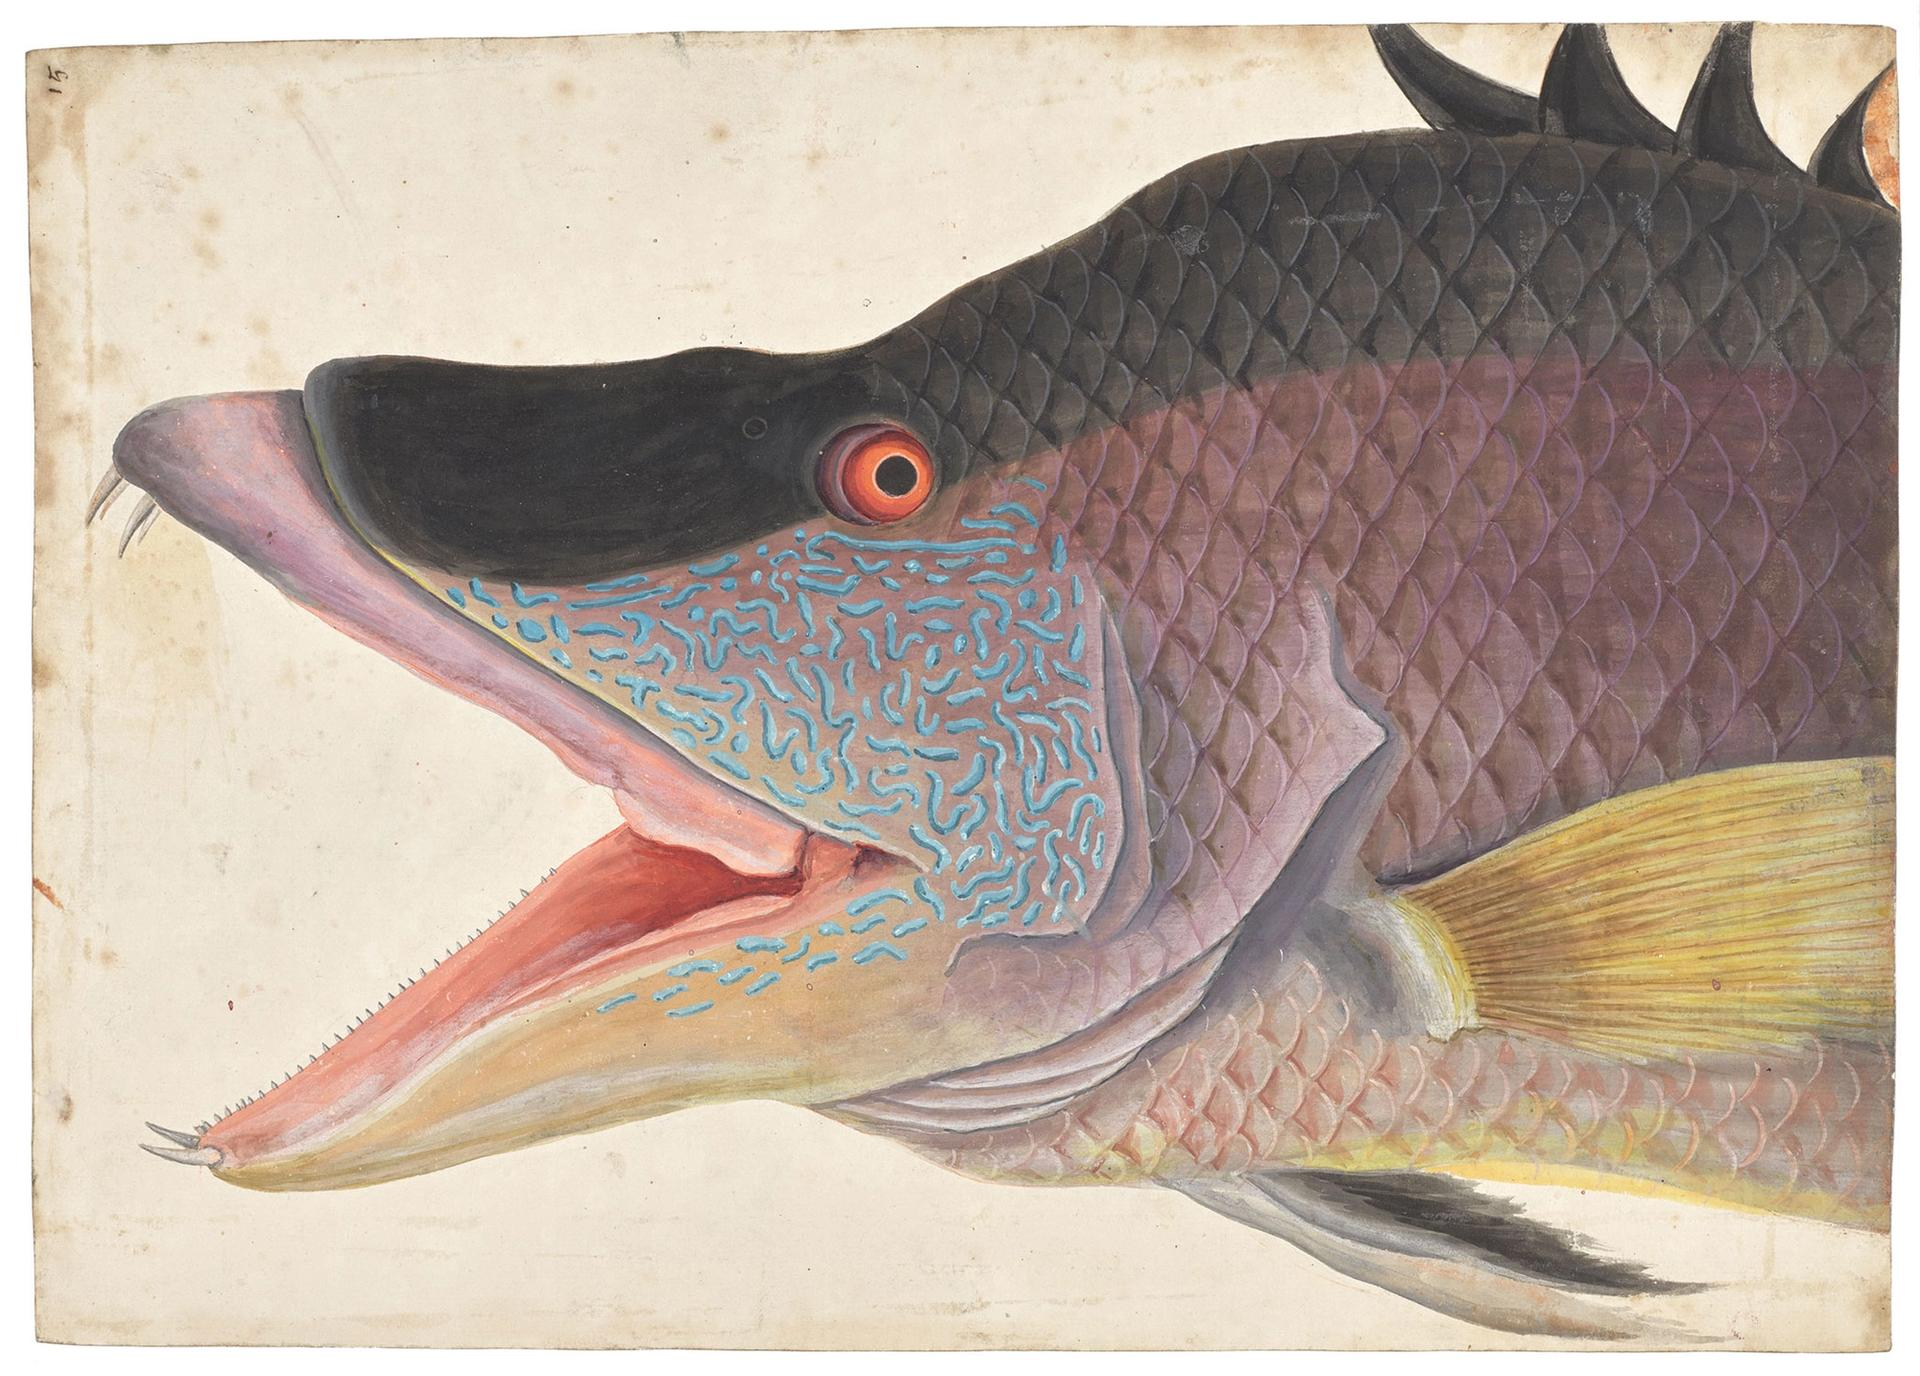 """Mark Catesby's The Great Hog-Fish (1725-26) shows the English naturalist's """"lifelike colouring"""" and close observation of his North American specimens Royal Collection Trust © Her Majesty Queen Elizabeth II 2021"""